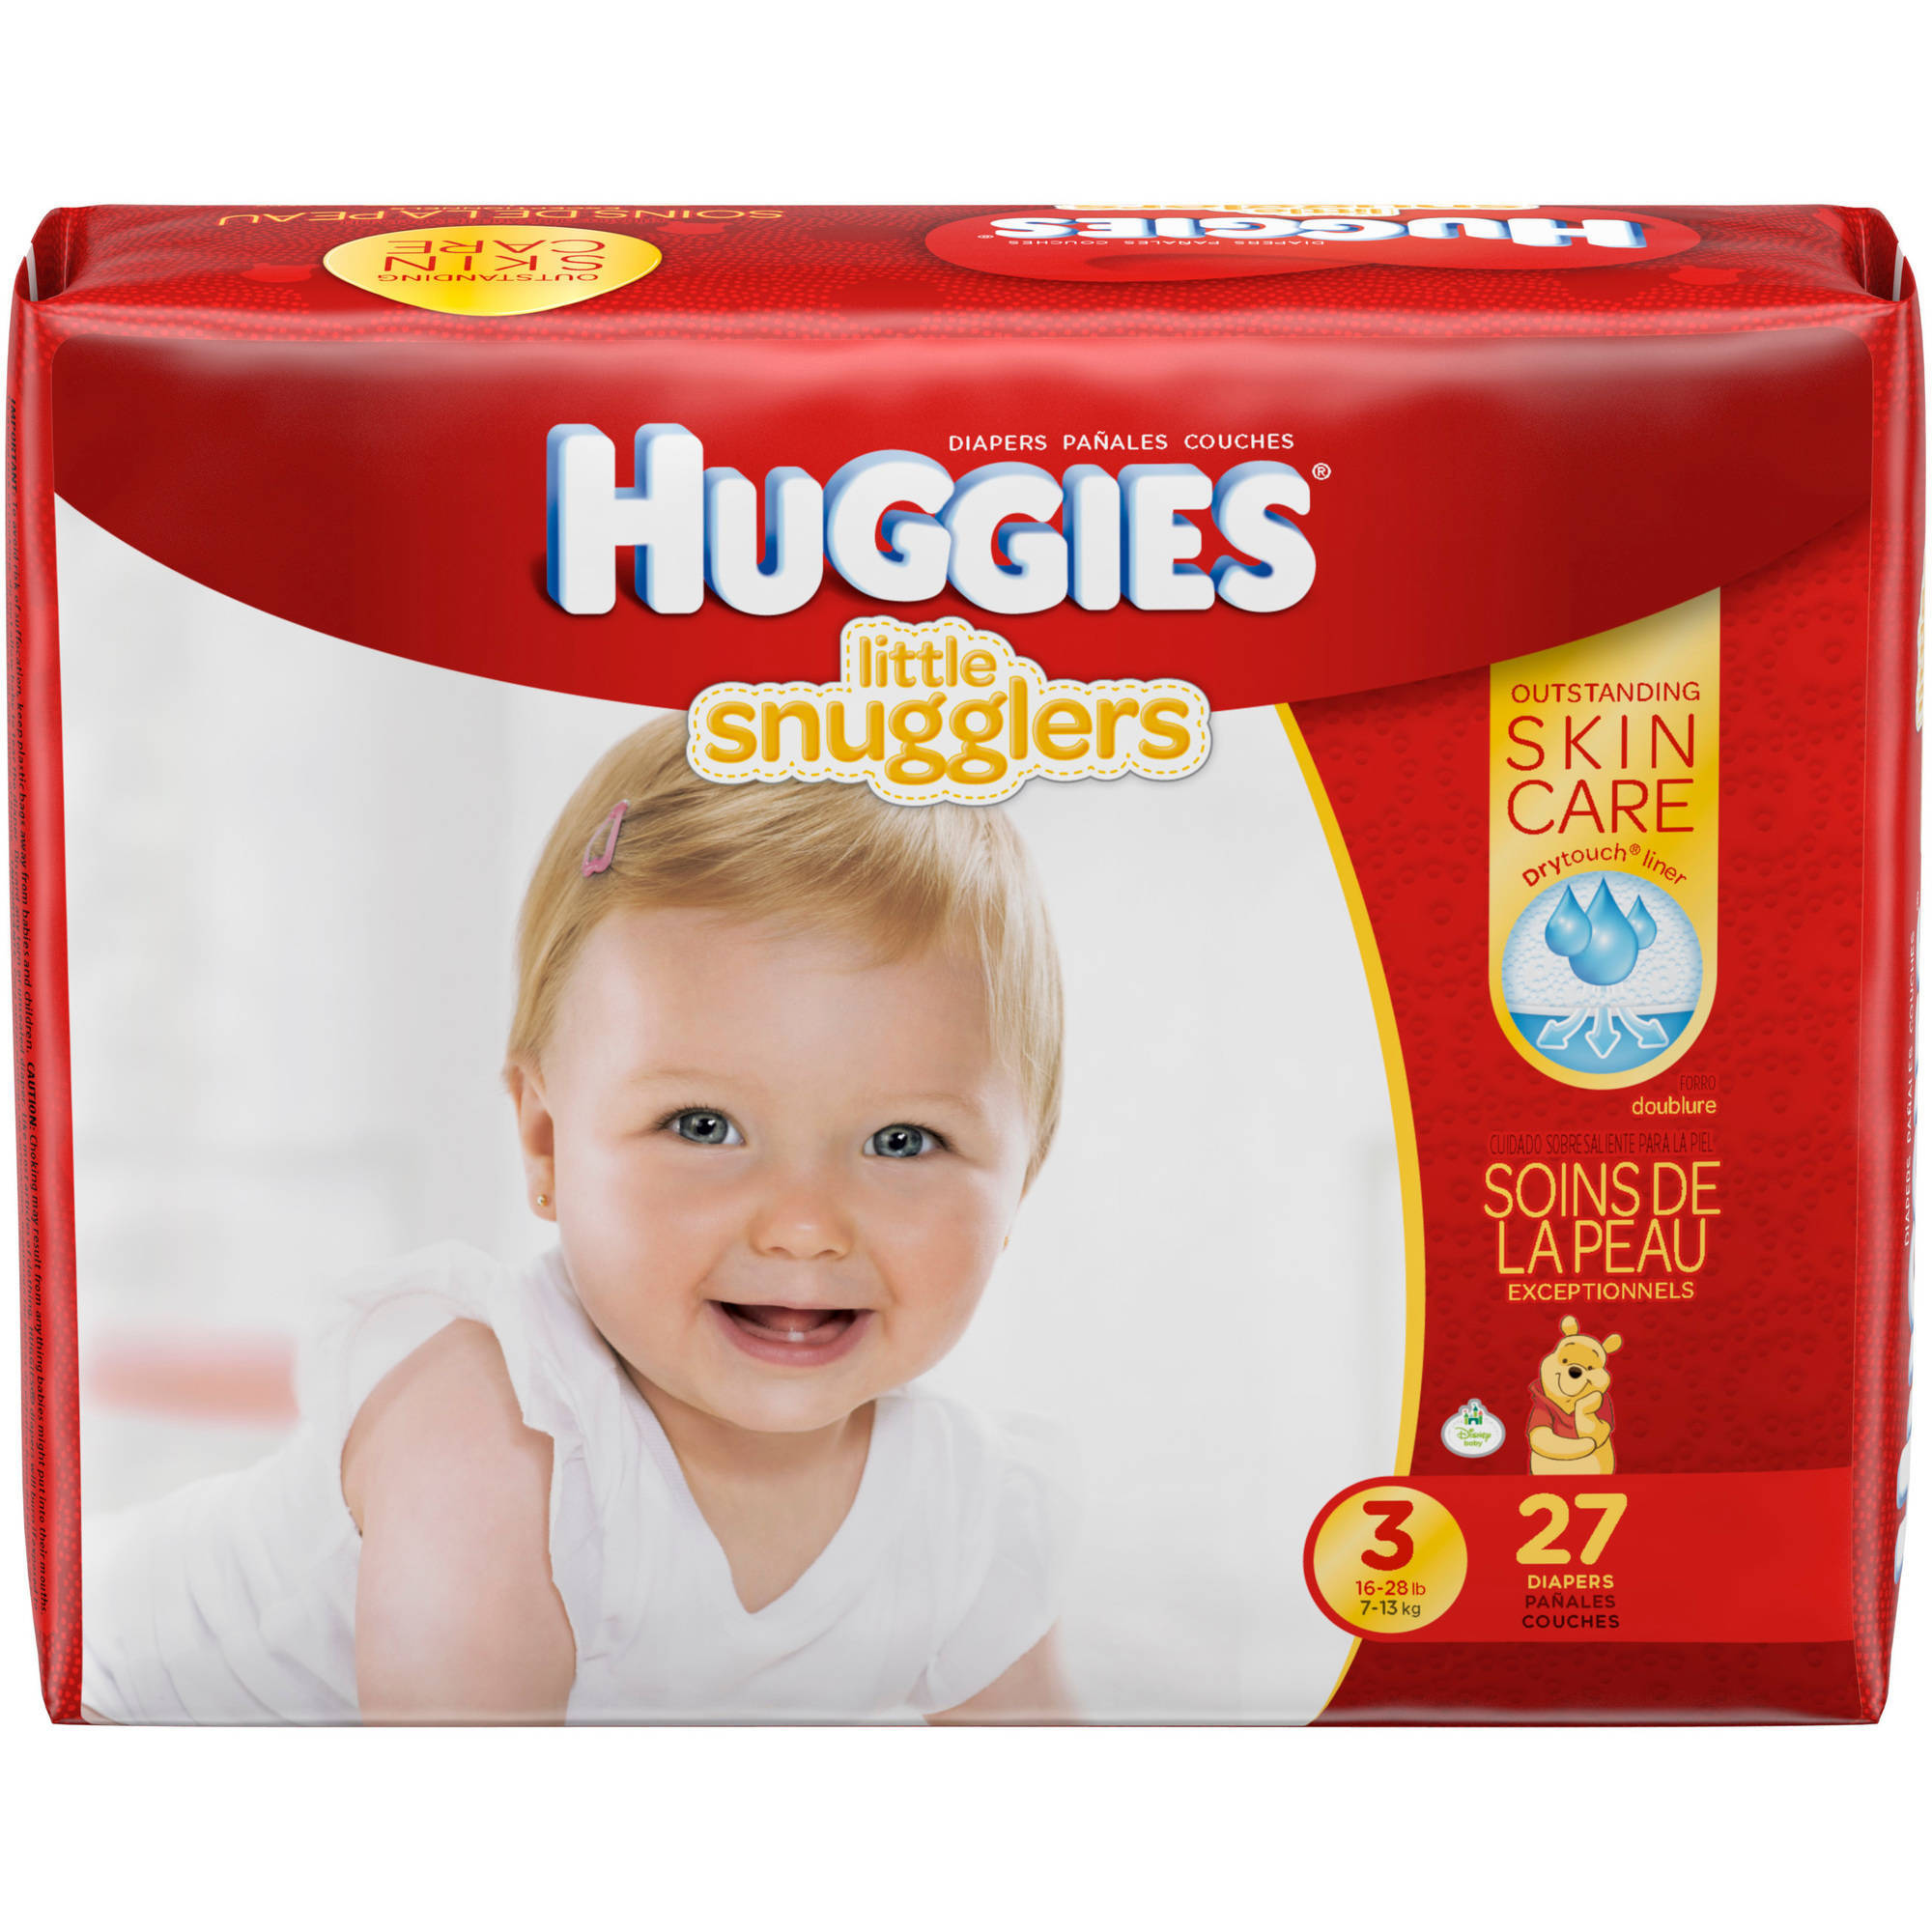 HUGGIES Little Snugglers Diapers, Size 3, Jumbo Pack, 27 count